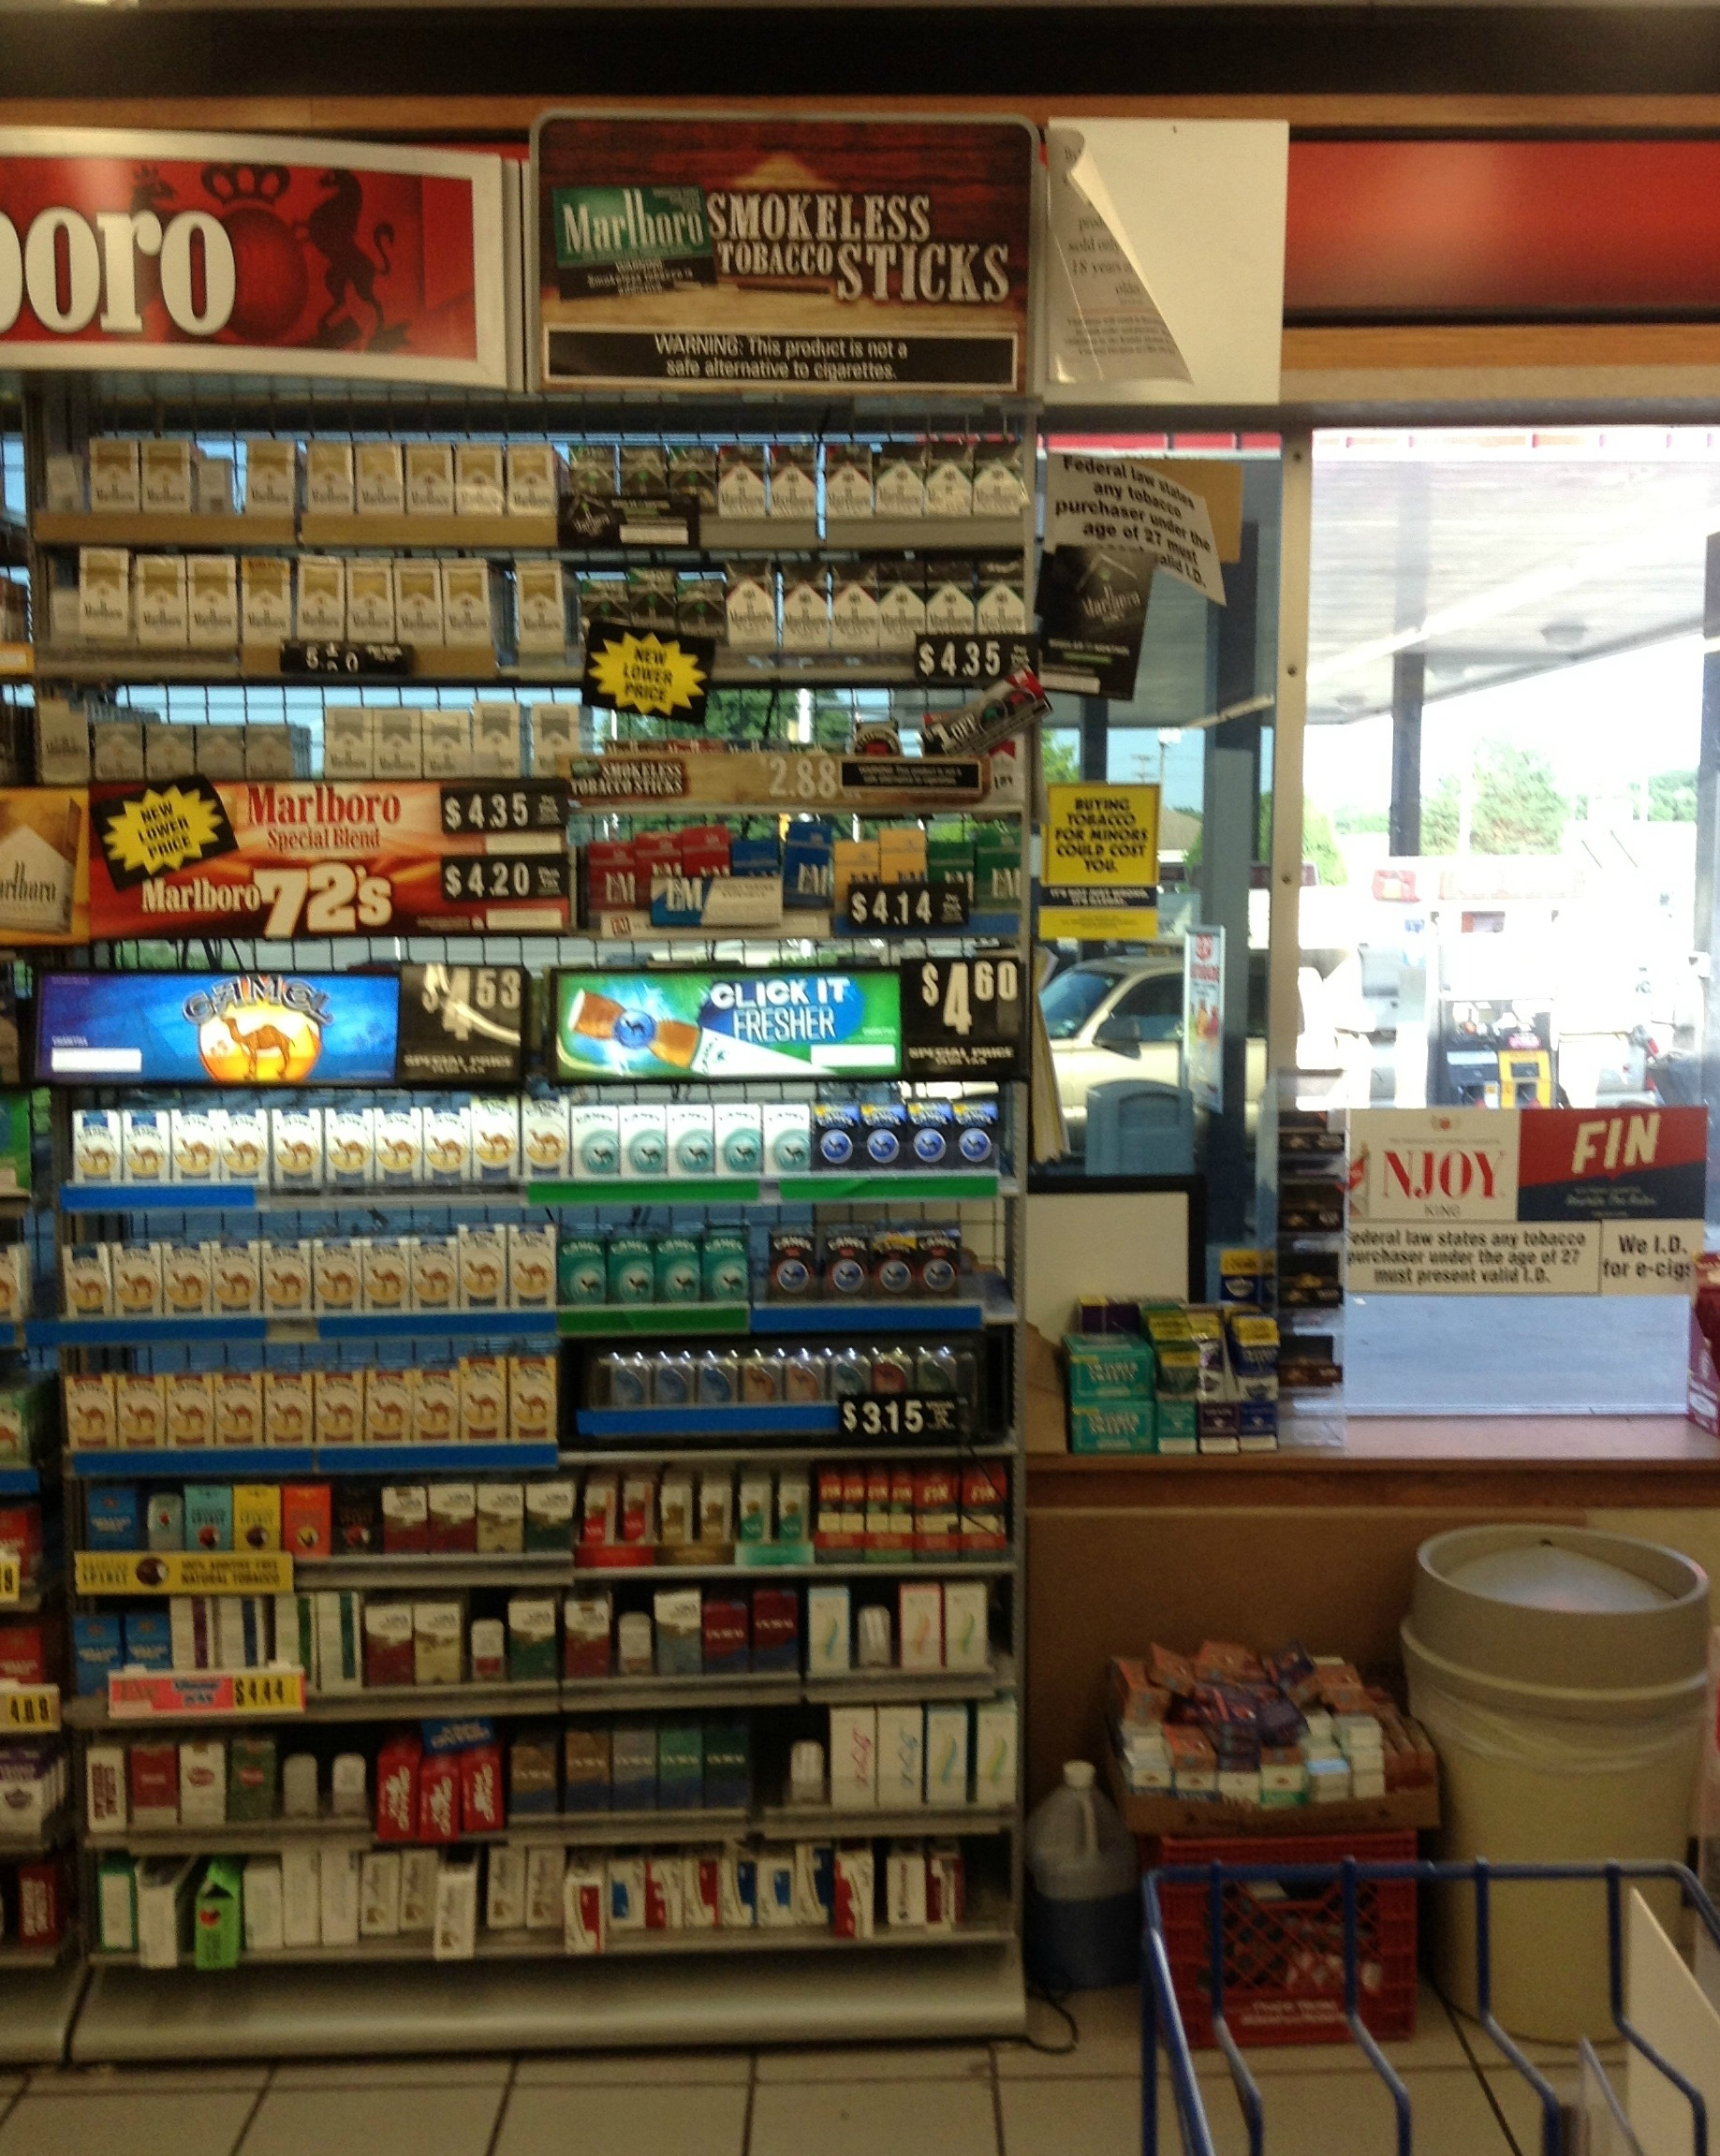 Retail Display Stands Australia Nyc Tobacco Product Display Restriction Counter Tobacco